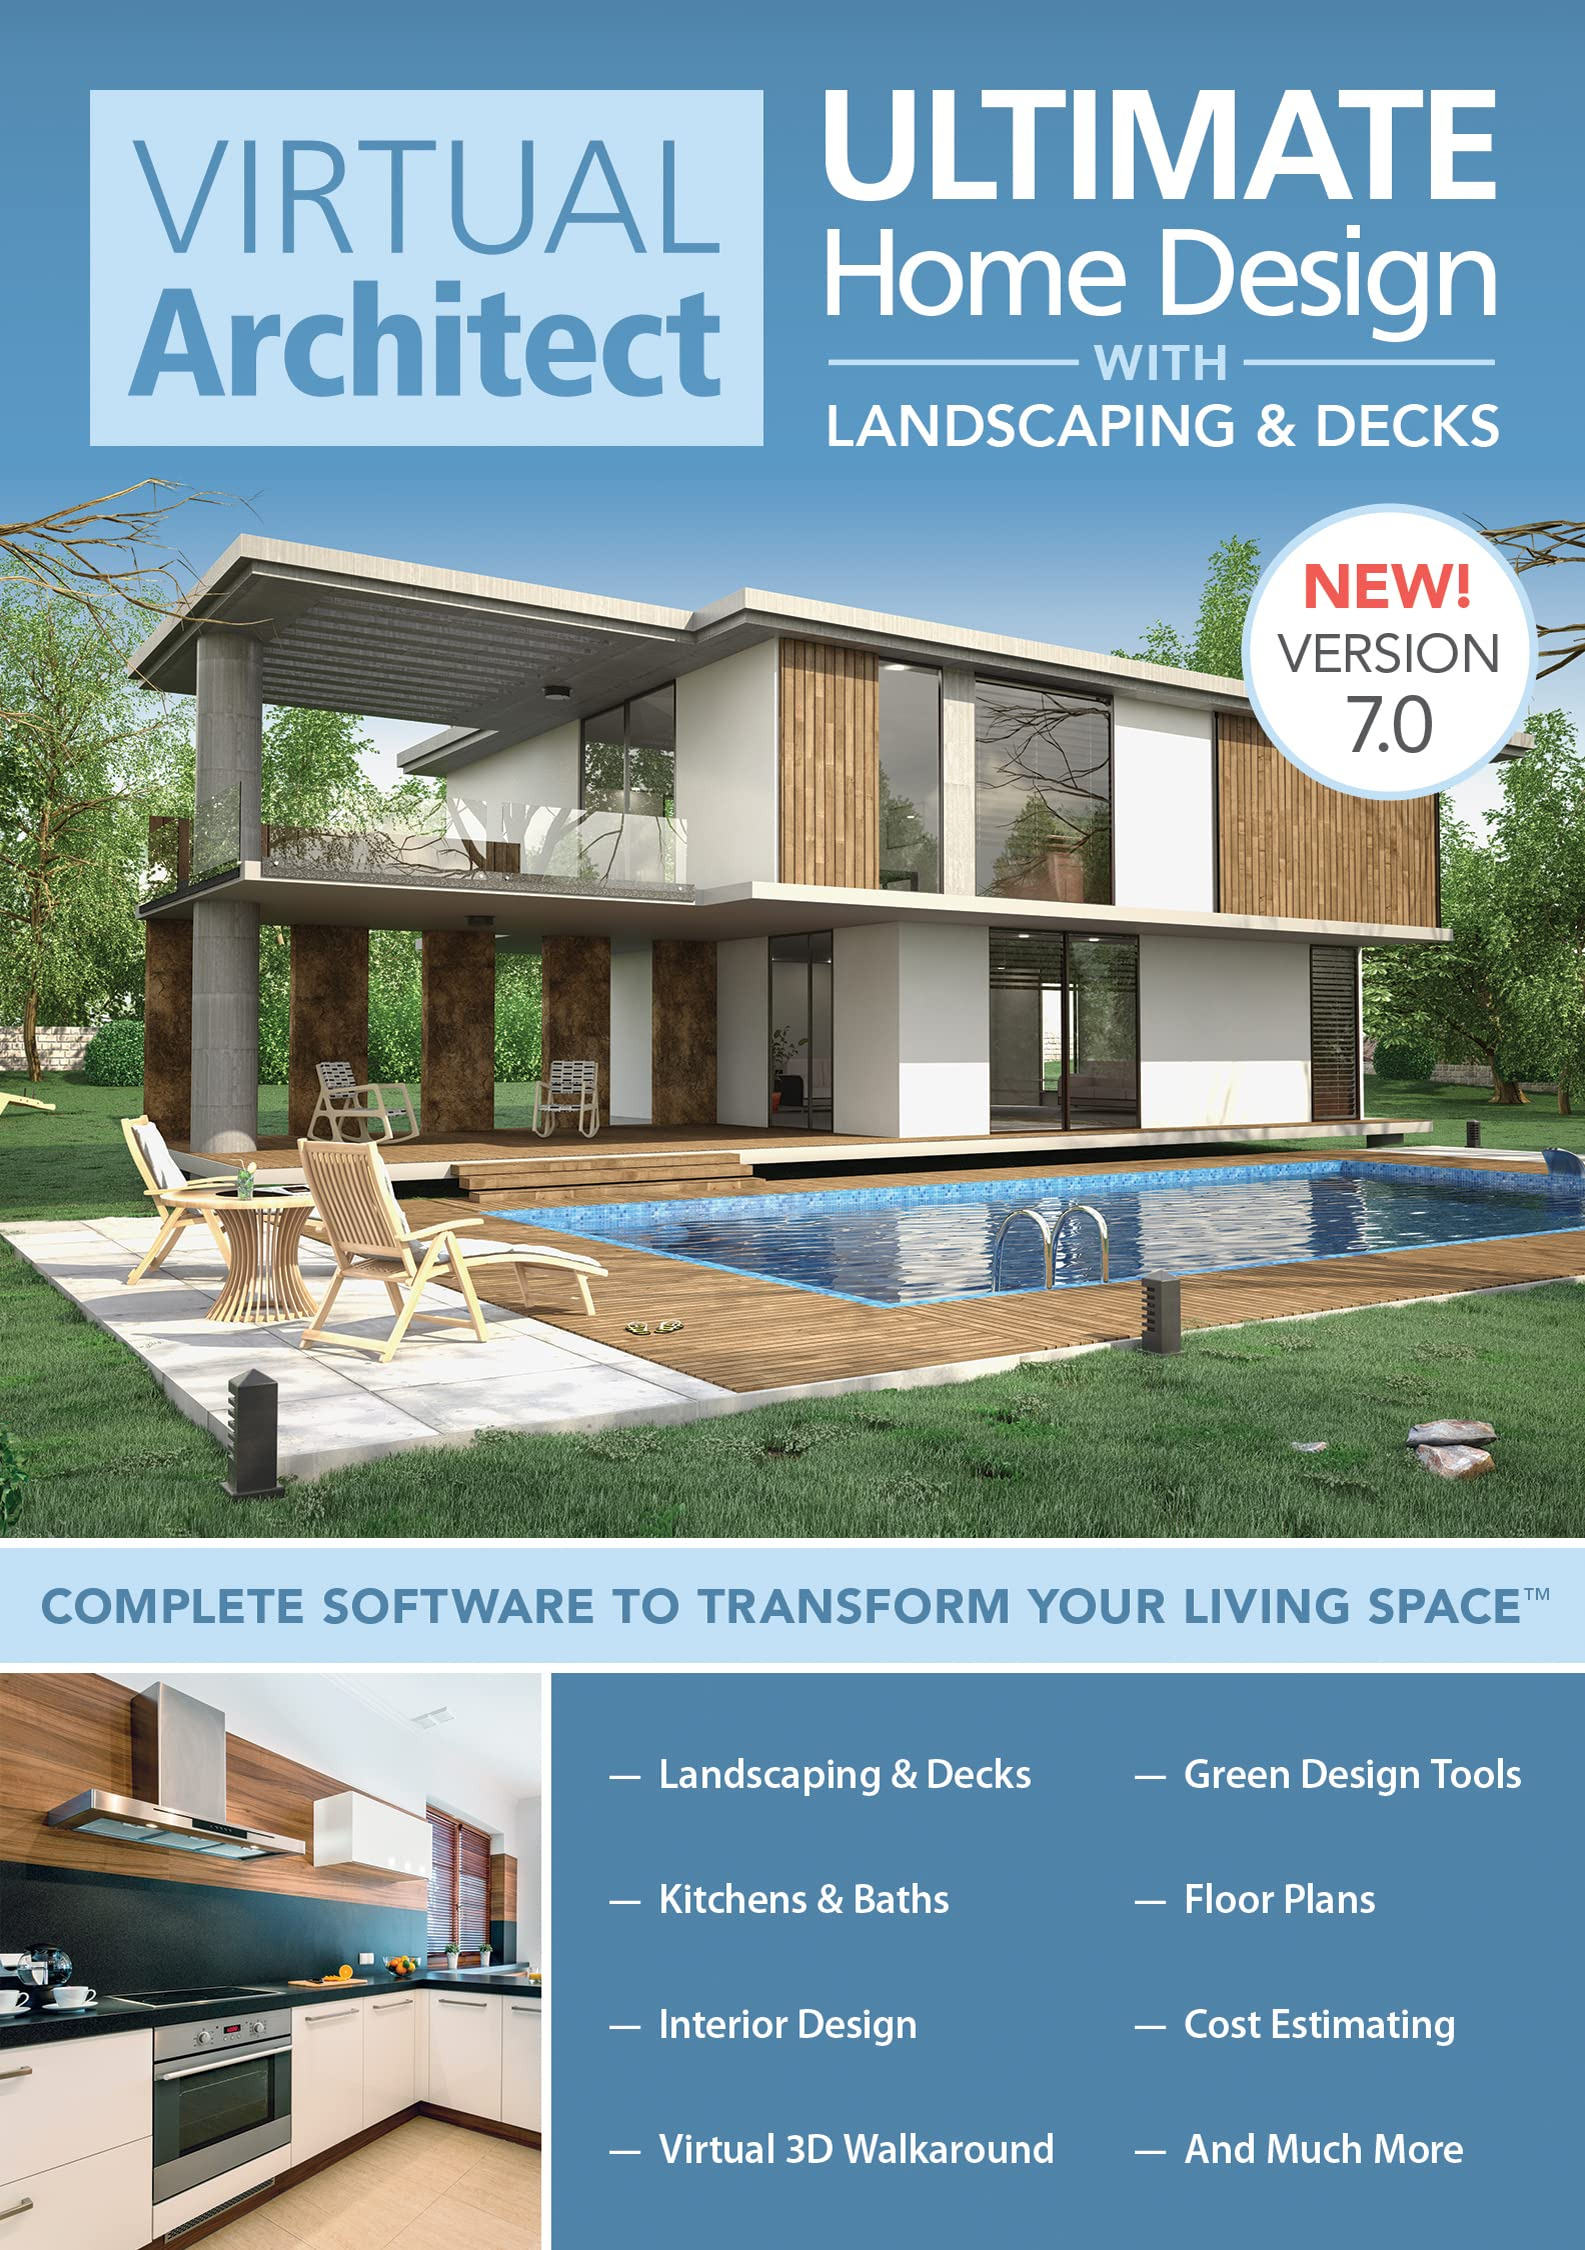 Best software for House Plans Best Of Virtual Architect Ultimate Home Design with Landscaping and Decks 7 0 [download]